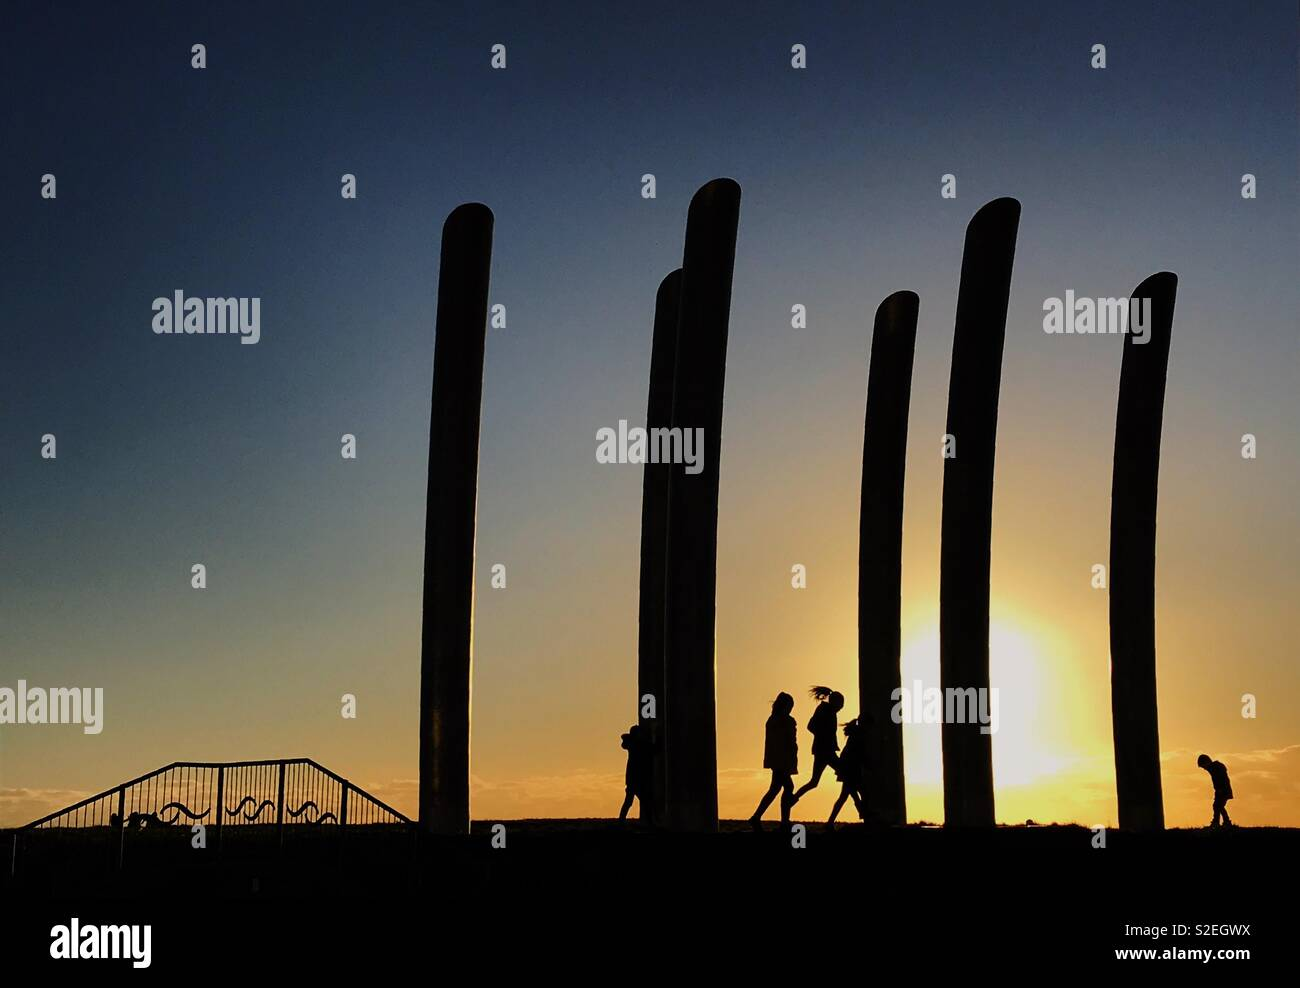 Sunsets and shadows in Blackpool - Stock Image